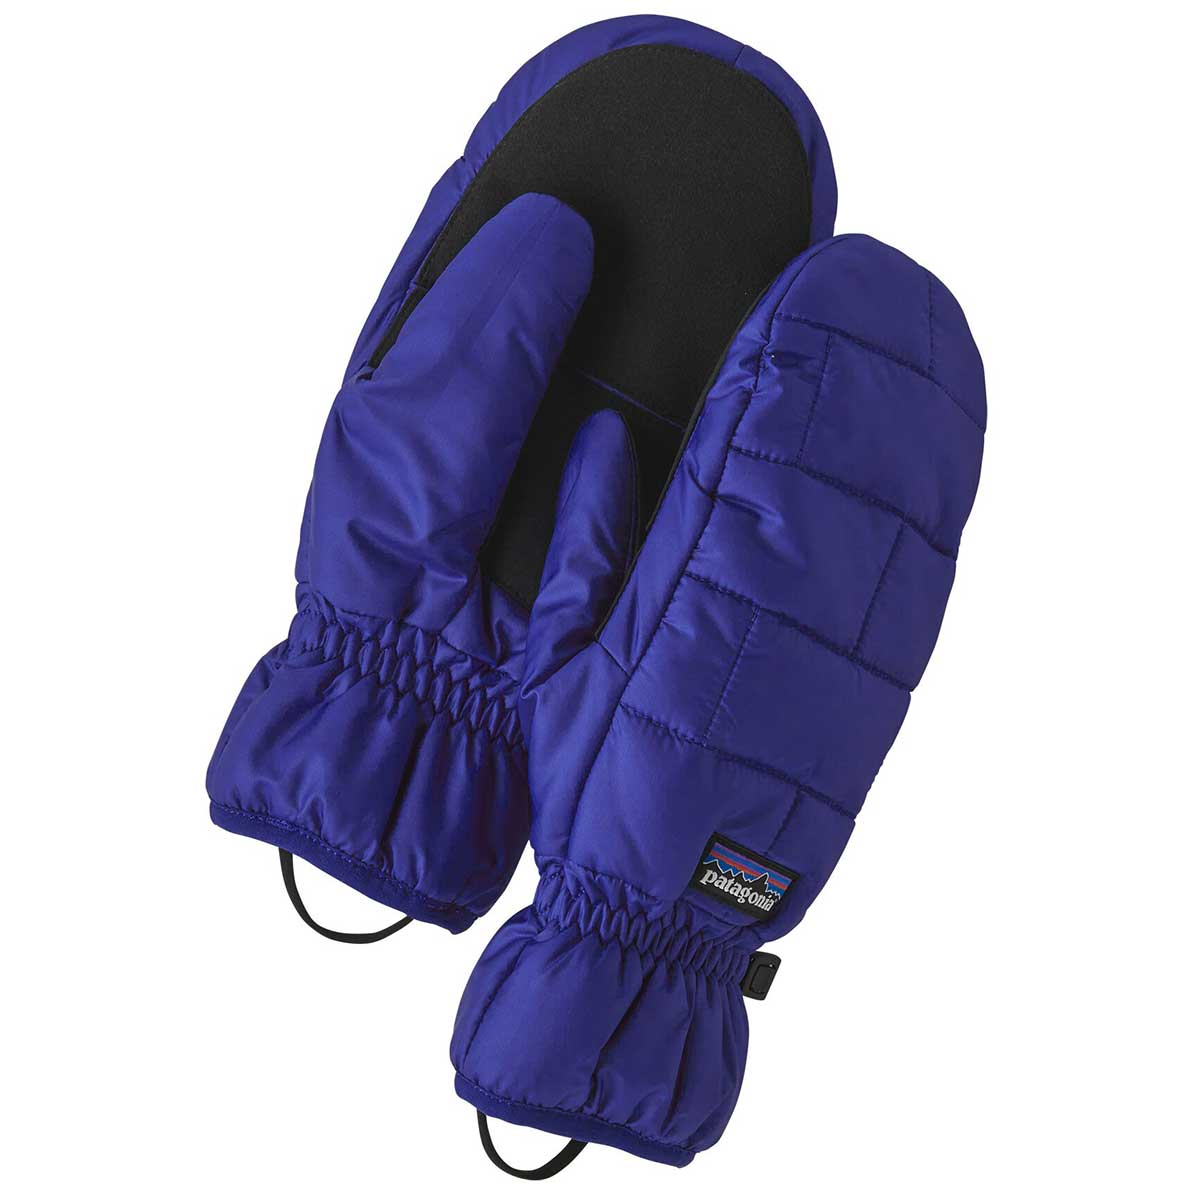 Patagonia Nano Puff Mitts in Cobalt Blue main view